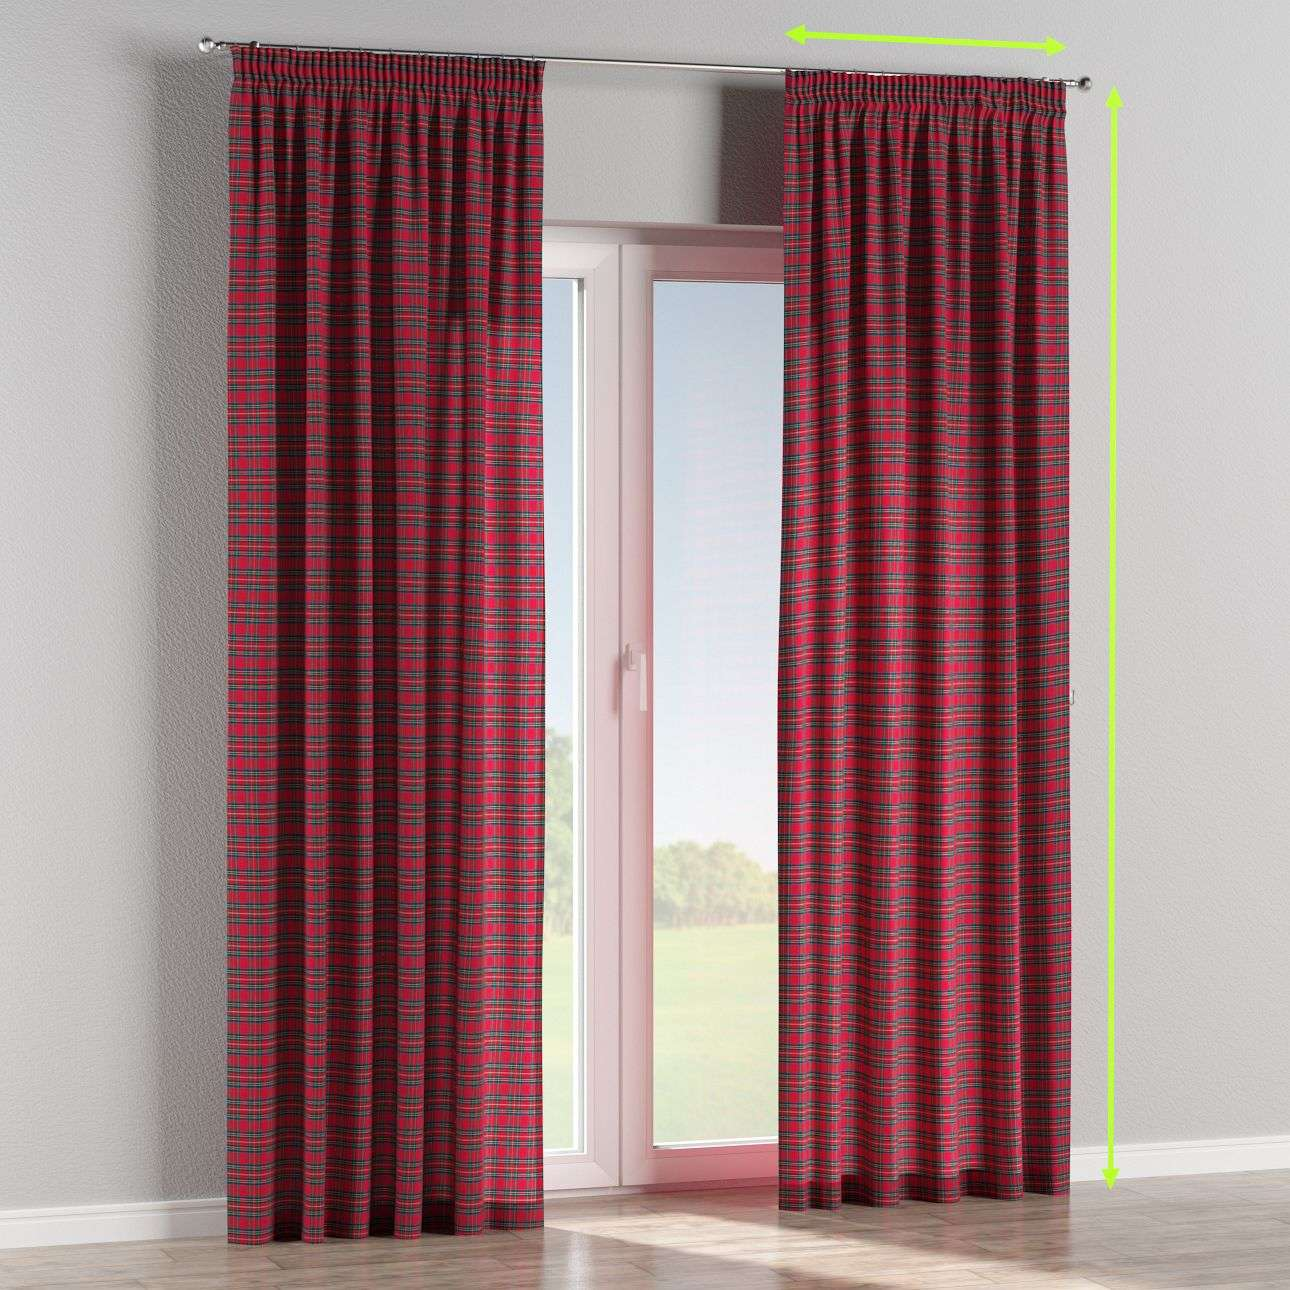 Pencil pleat lined curtains in collection Bristol, fabric: 126-29